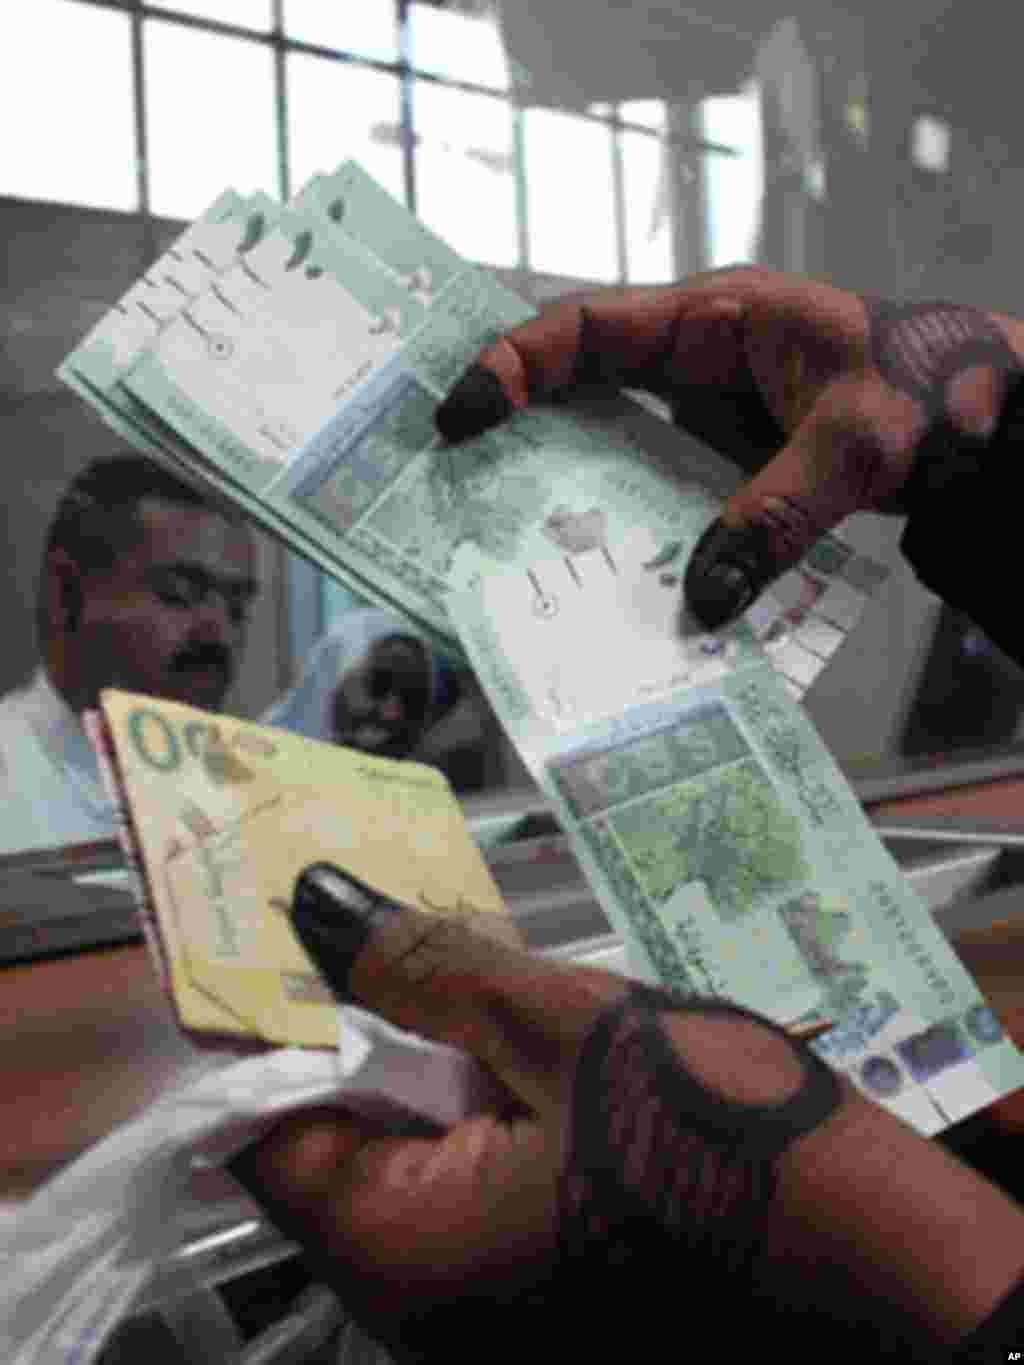 President Kiir should know the difference between cows and money. How come he kept money in his compound like cows and yet we have safe places like banks for him to save his save his money? Keeping money in the office is a sign of corruption. - James Ruei Majok in Unity state A woman displays Sudan's new currency at the central bank in Khartoum, Sudan, in July 2011.